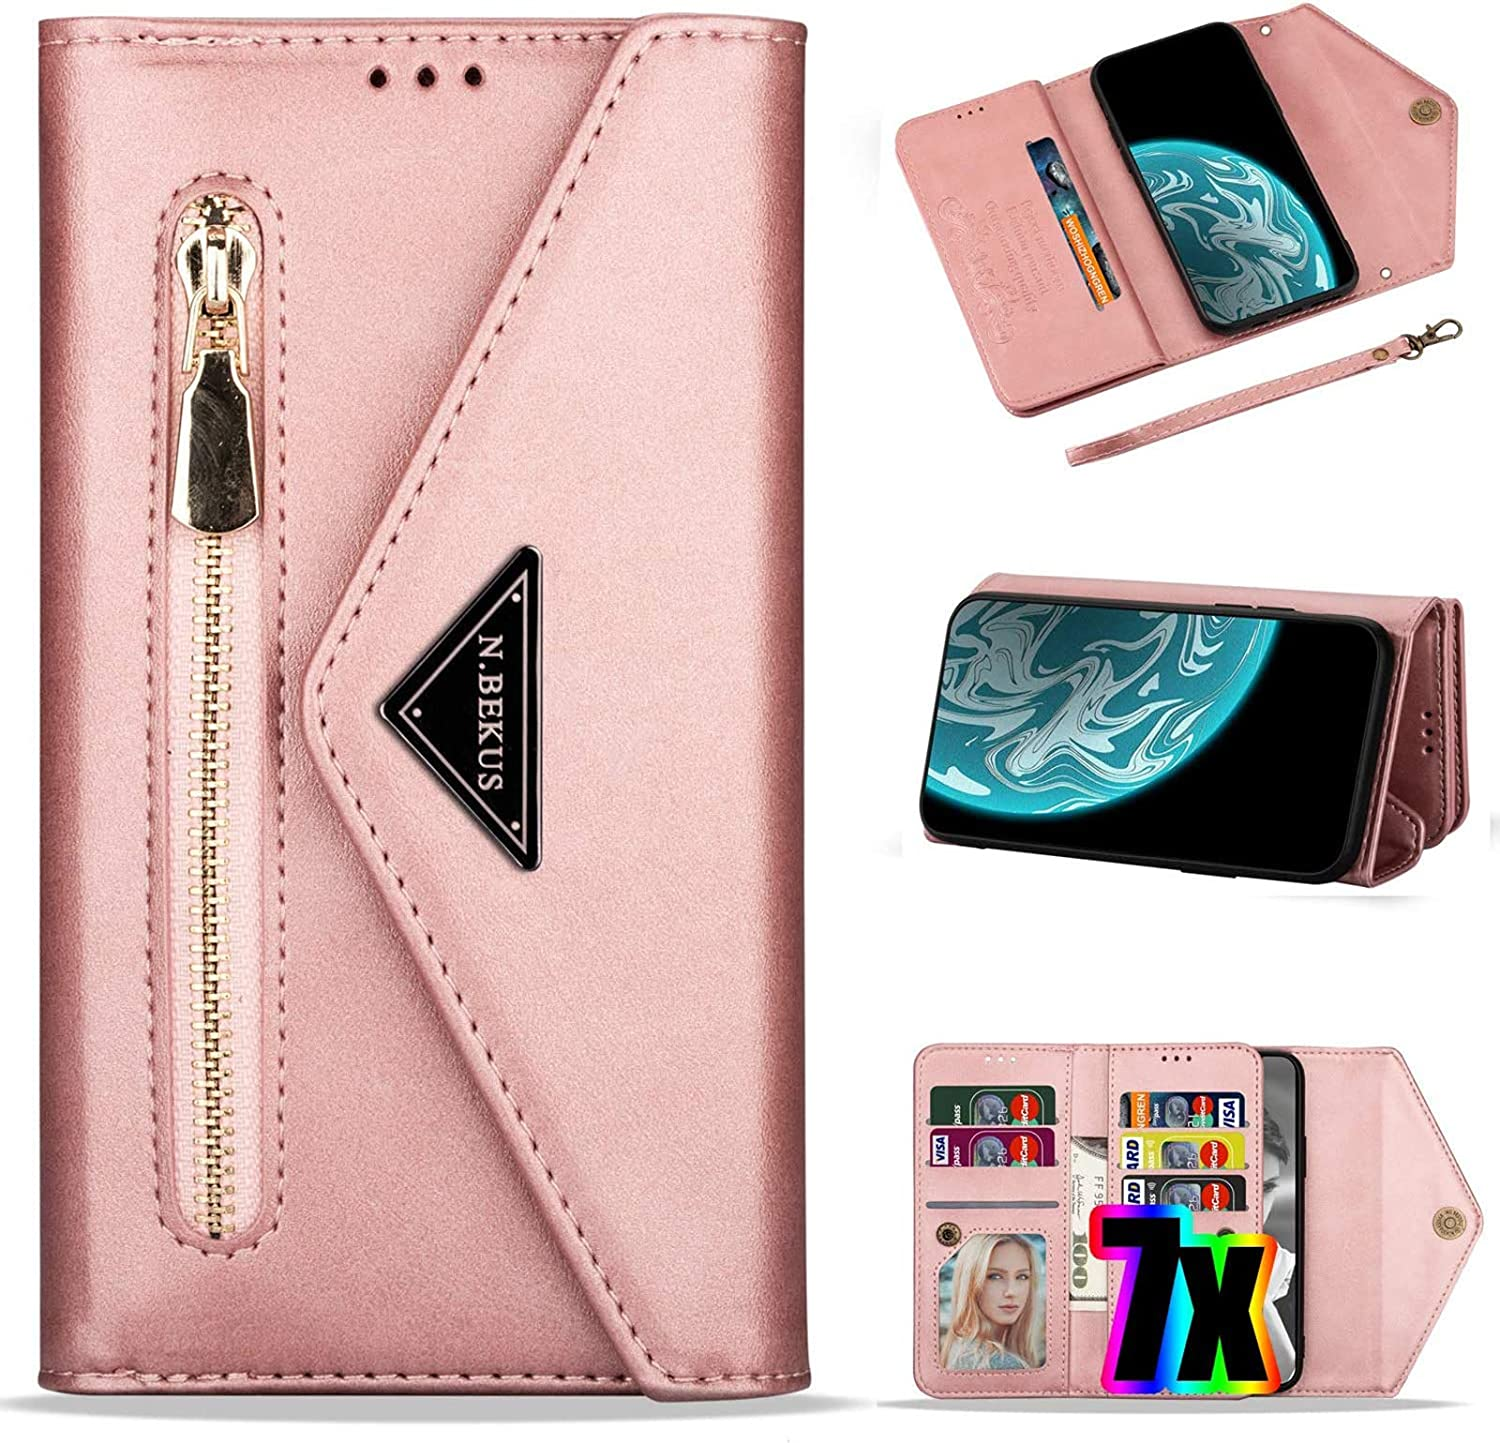 Samsung Galaxy S20 Plus Wallet Case,S20+ Phone Case with Card Holder,Vodico Folio Flip Zipper Pocket Clutch Leather Purse Folding Full Body Shockproof Stand Cover with Strap for Women (Rose Gold)